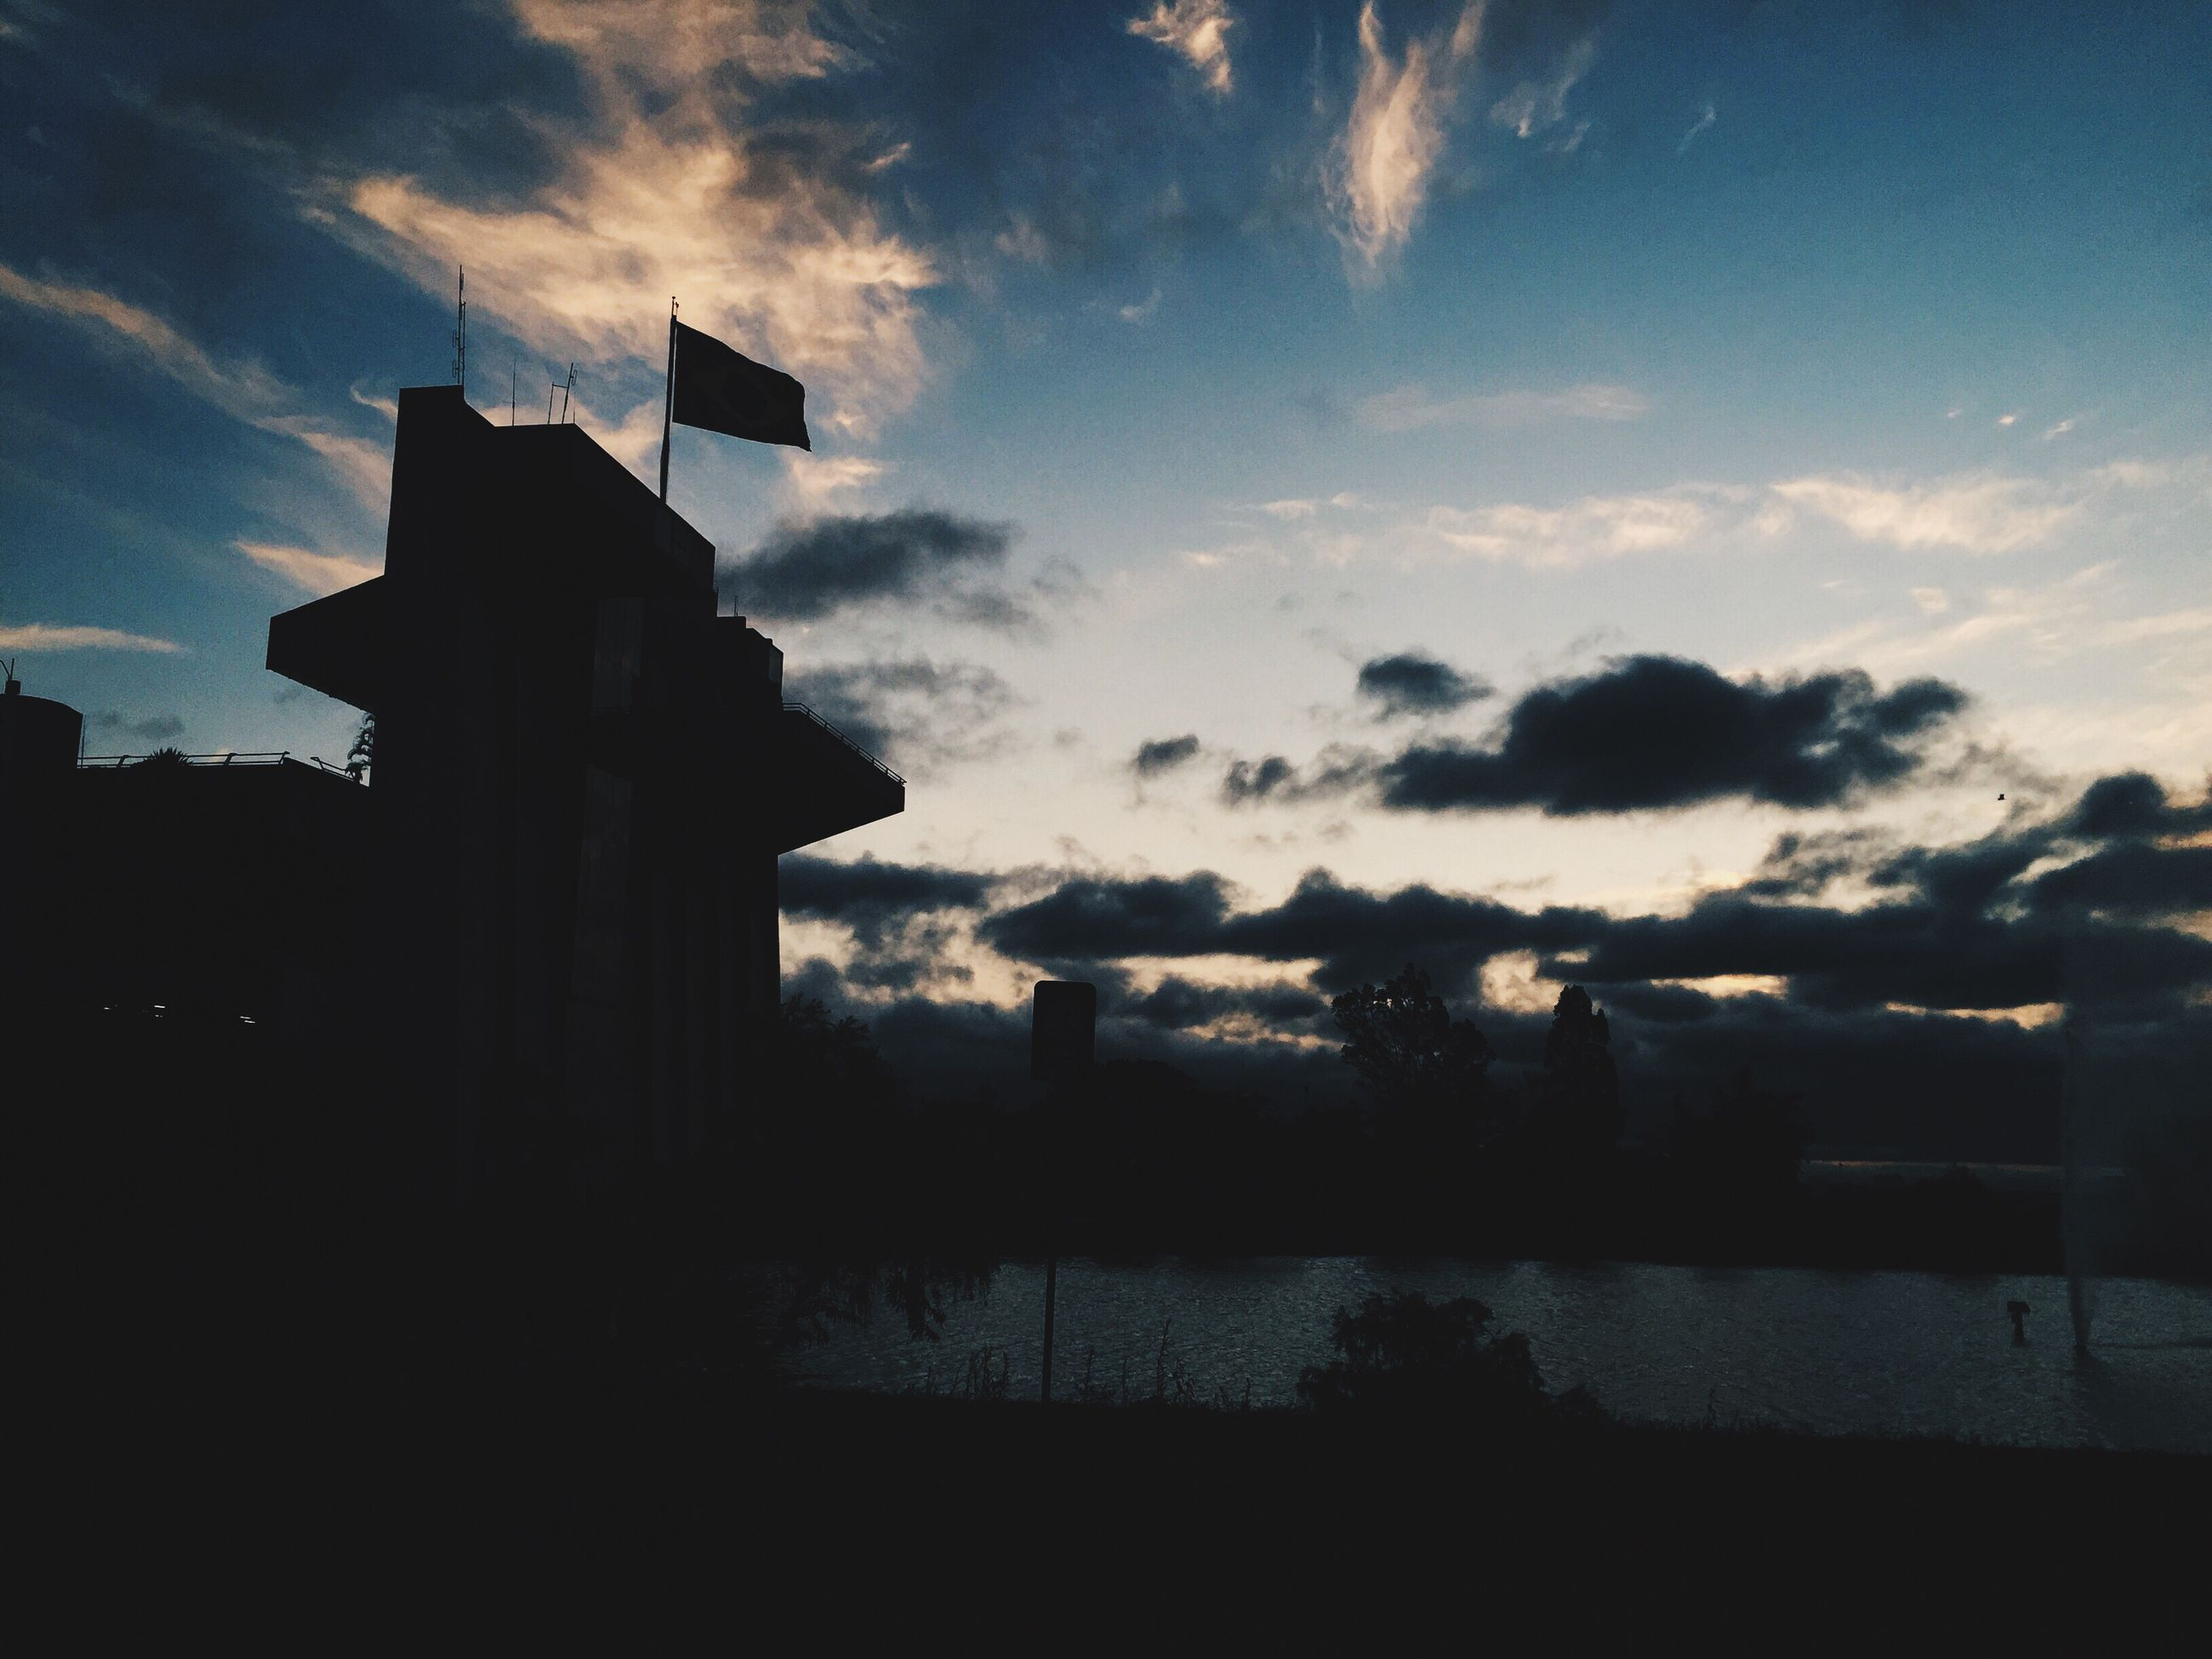 silhouette, sky, building exterior, sunset, built structure, architecture, cloud - sky, water, dusk, cloud, tranquility, scenics, tranquil scene, beauty in nature, nature, sea, outdoors, no people, reflection, outline